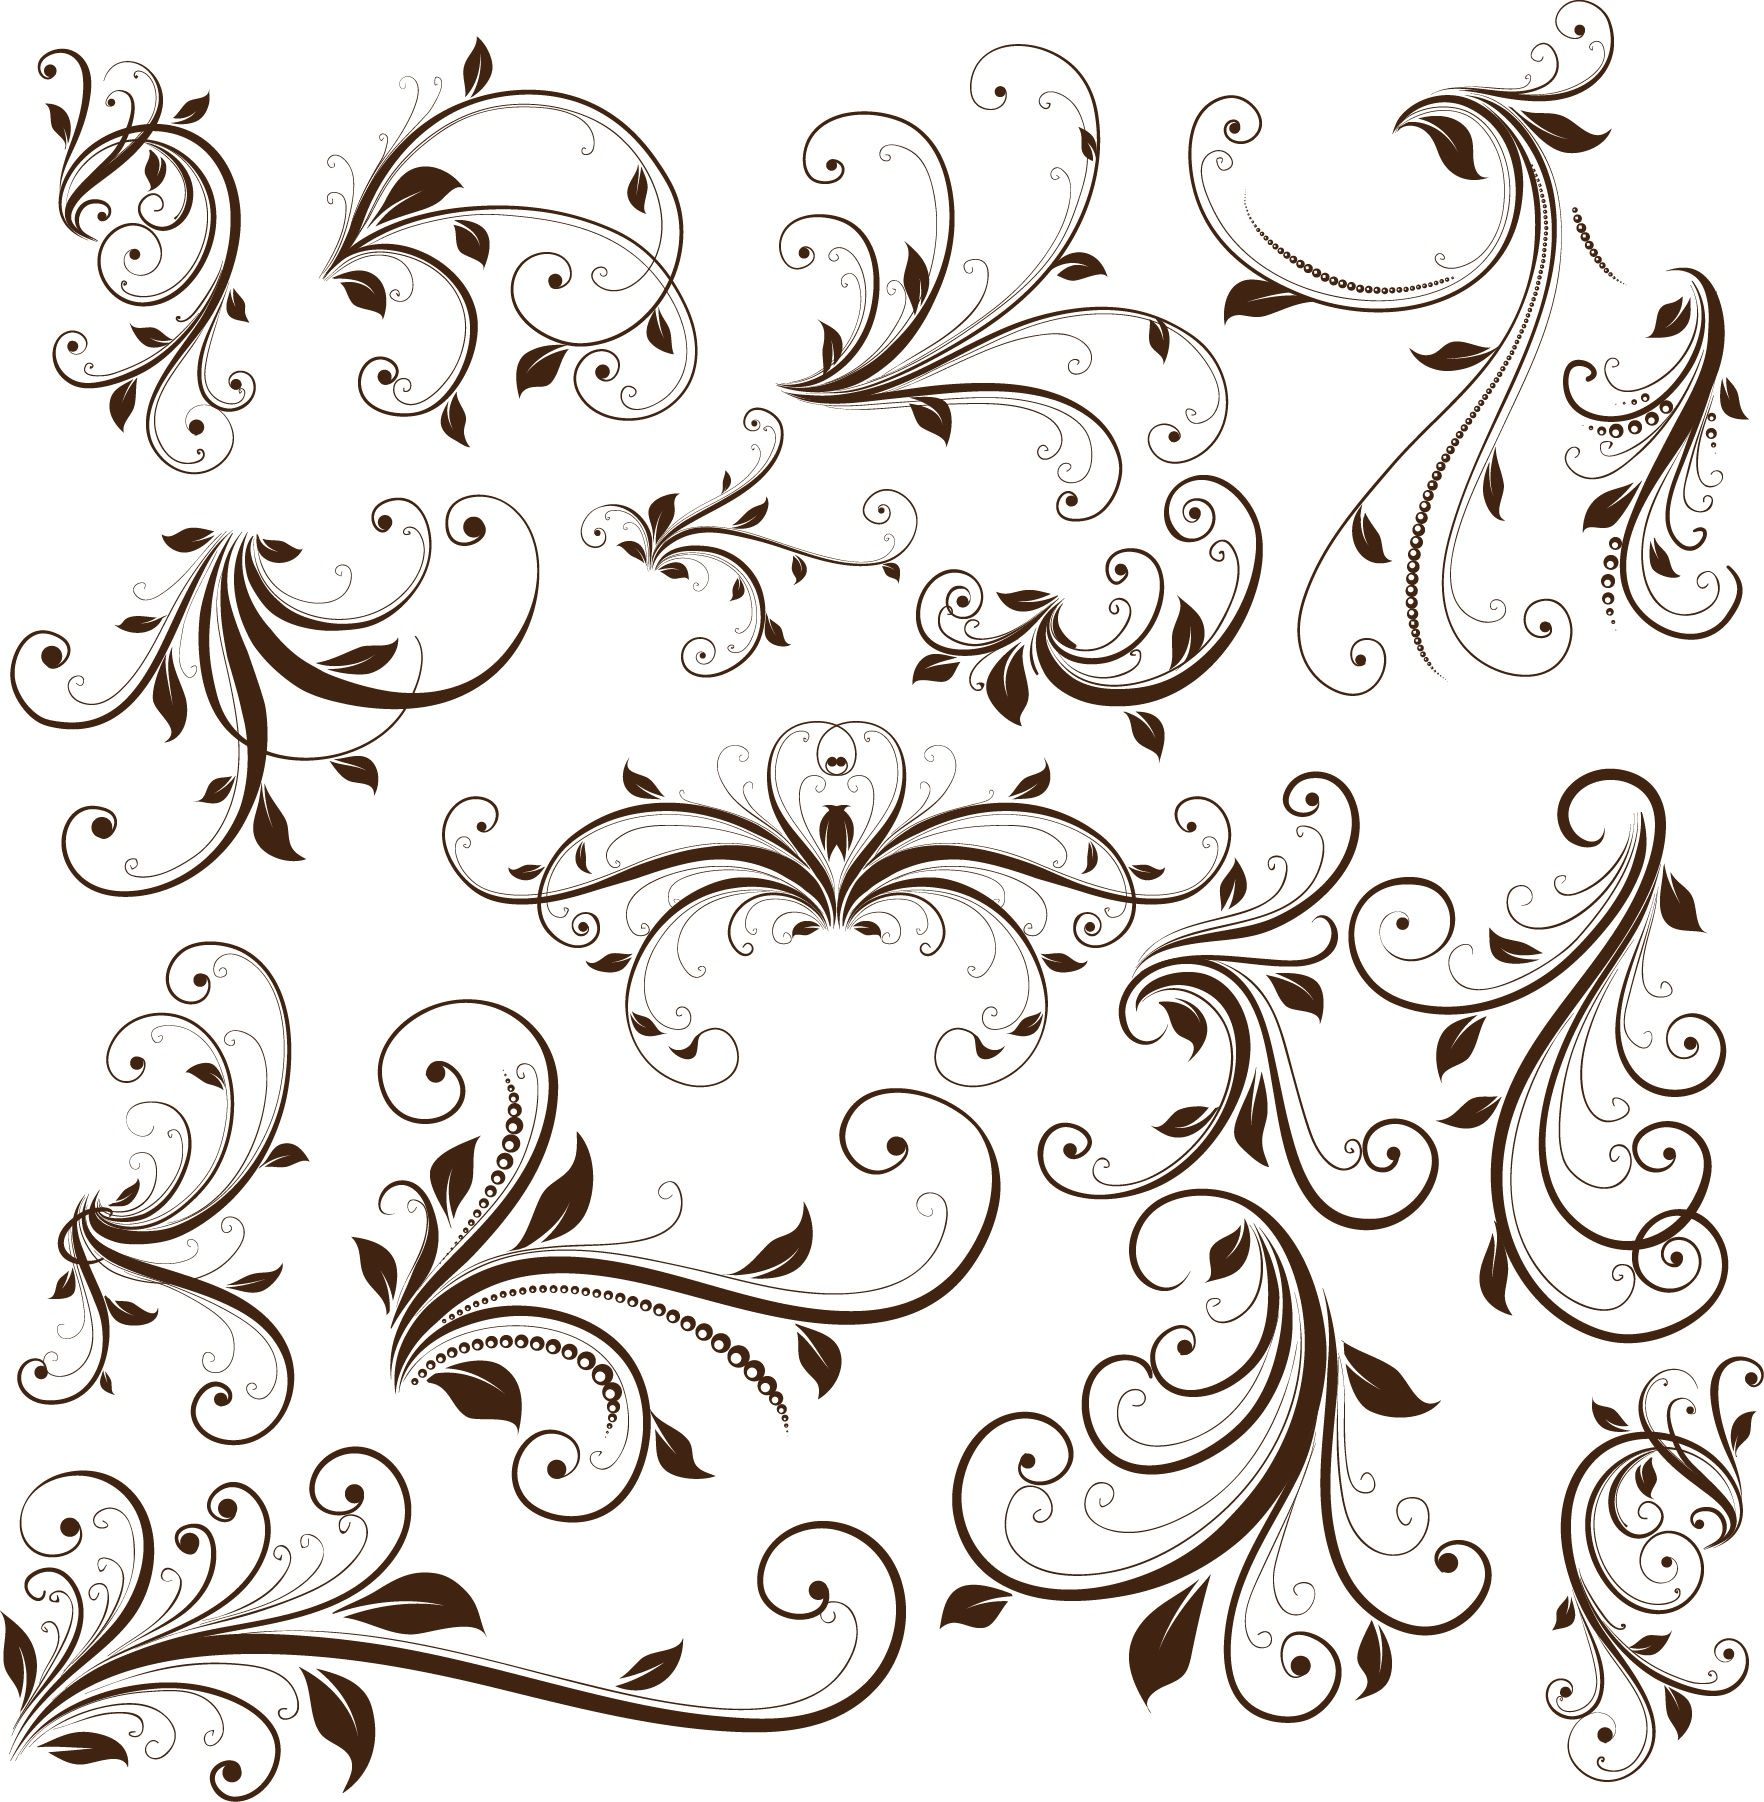 12 Free Graphic Decorative Swirl Vector Images